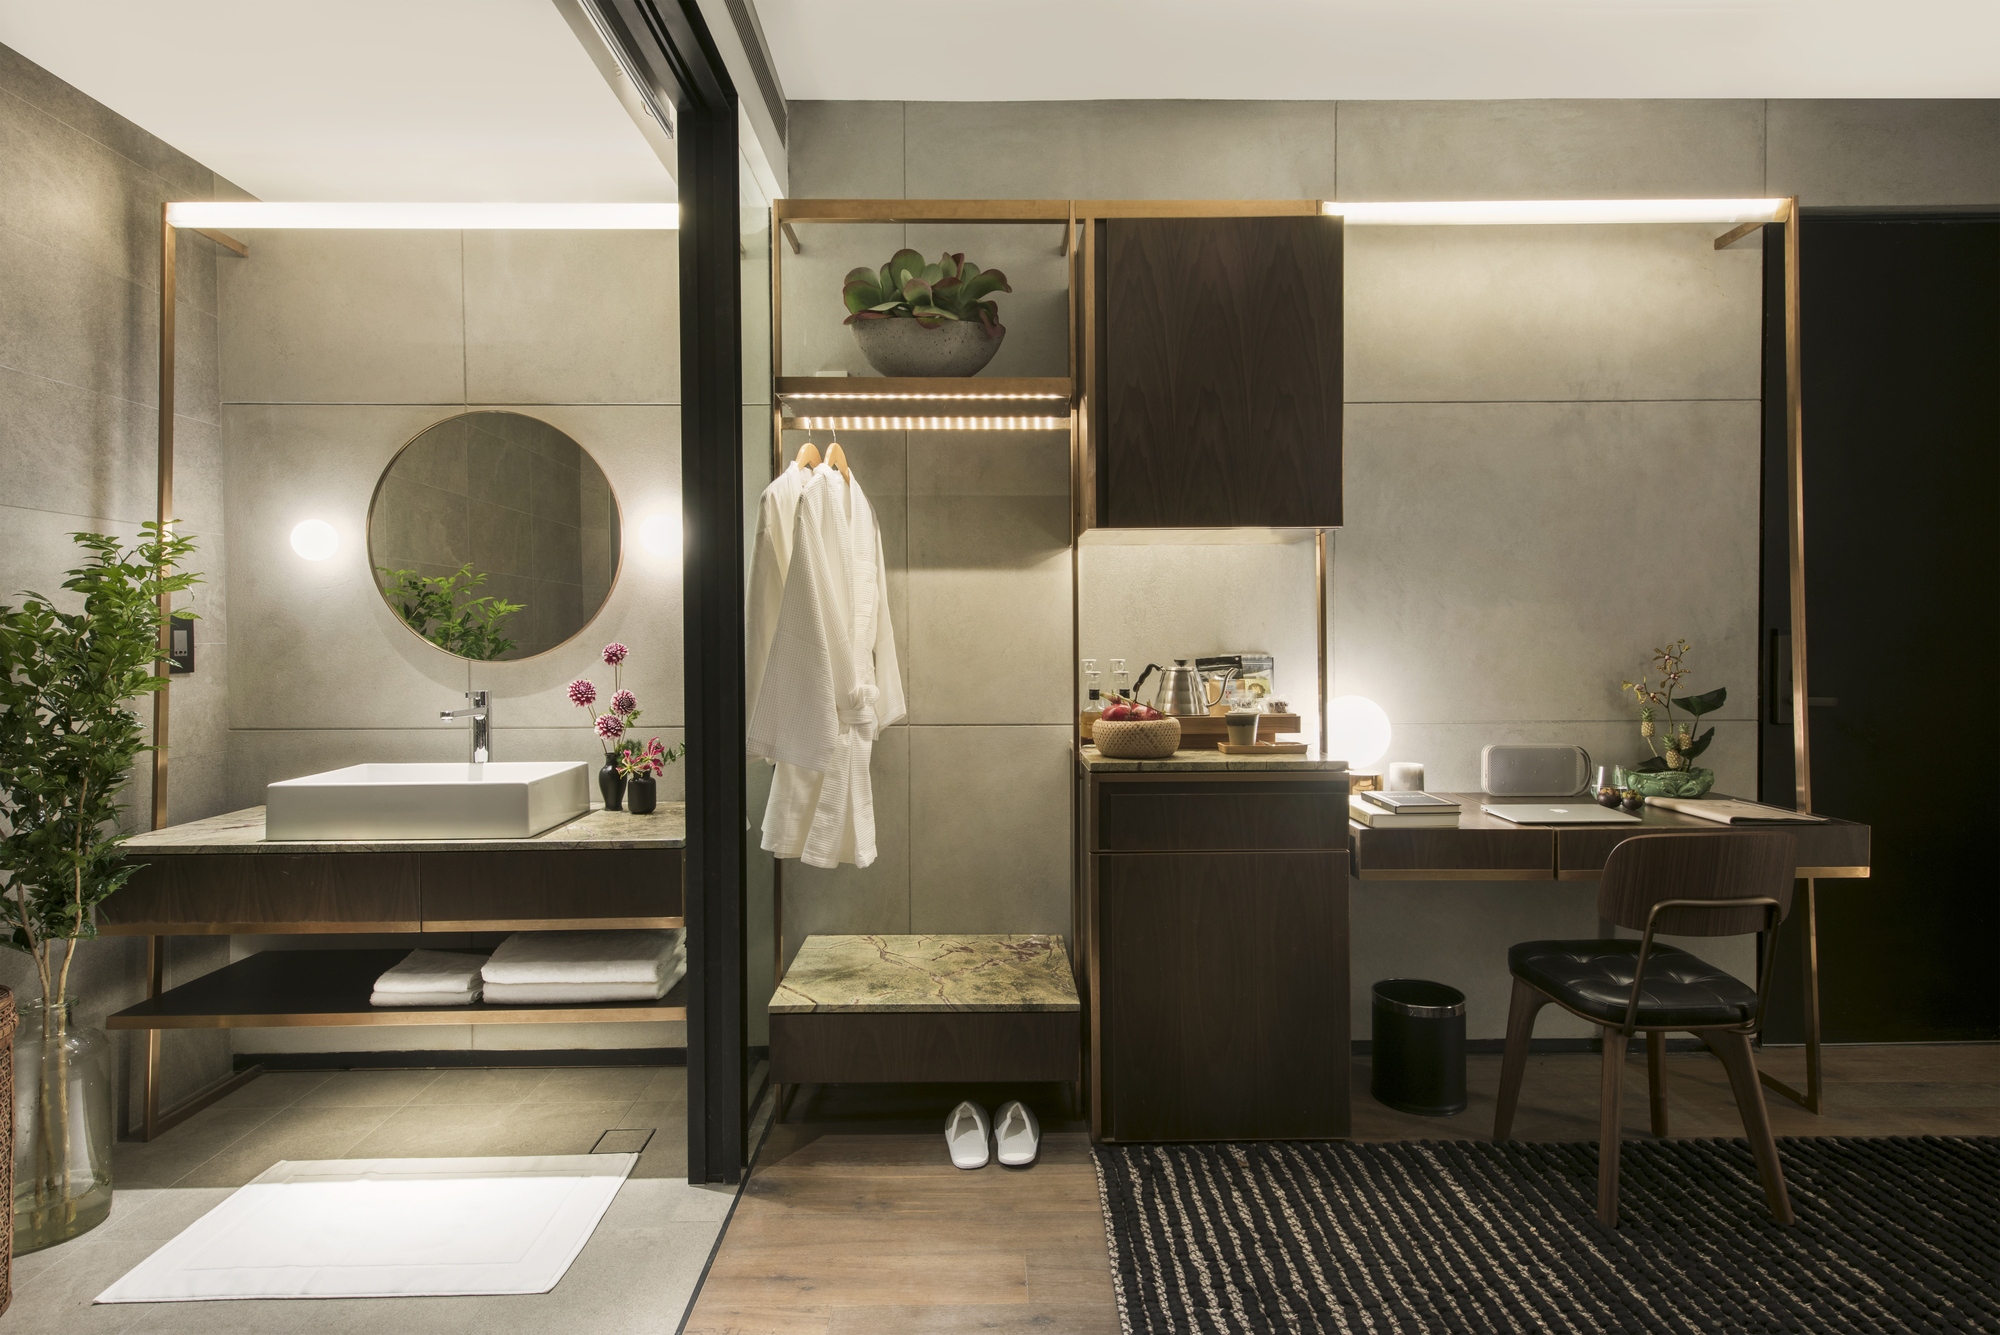 Refined details including the thin brass frame is a signature design in the hotel.